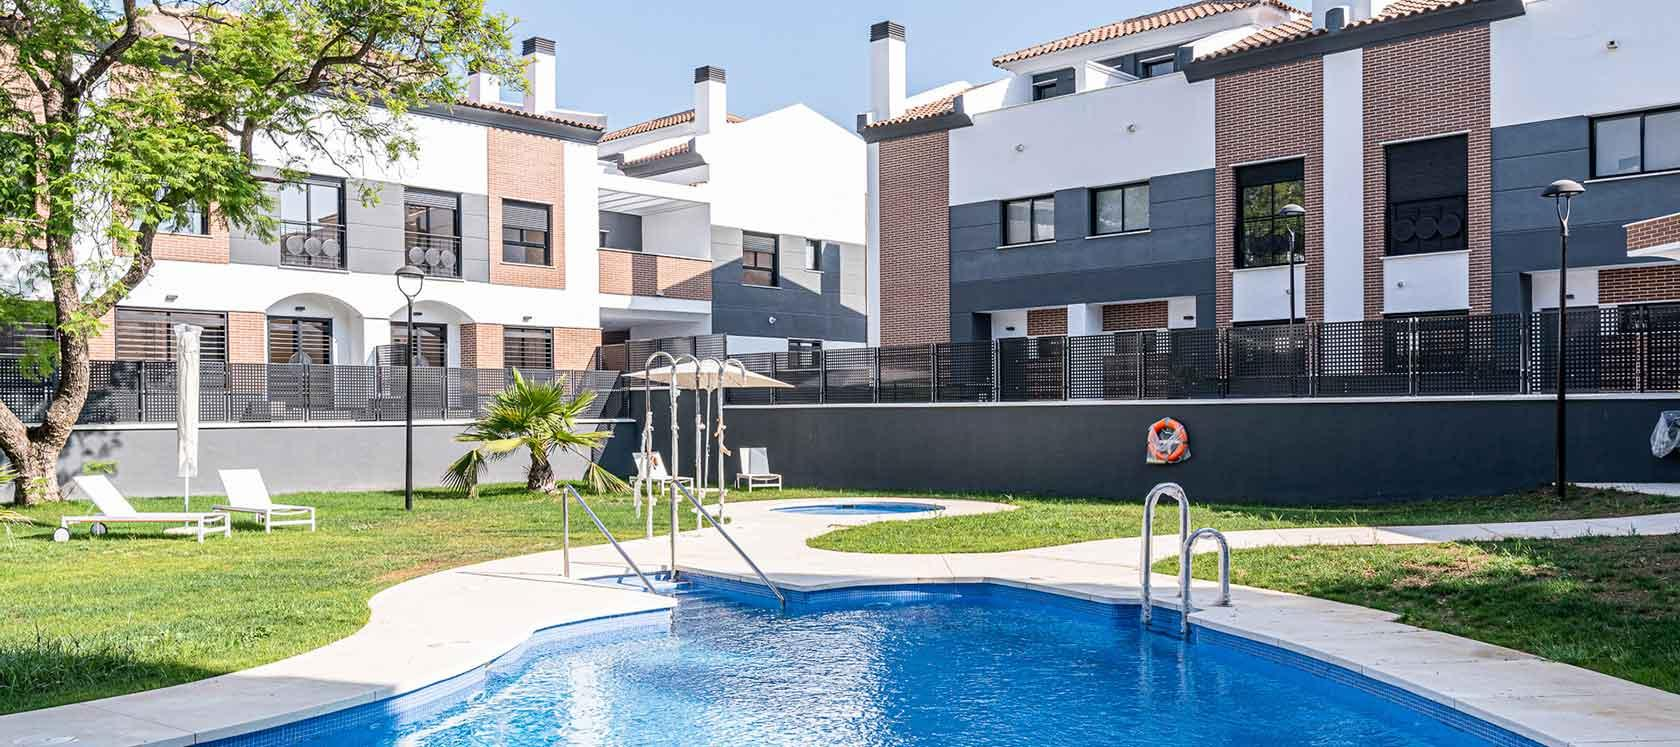 New-build flats in Malaga| Célere Churriana Development